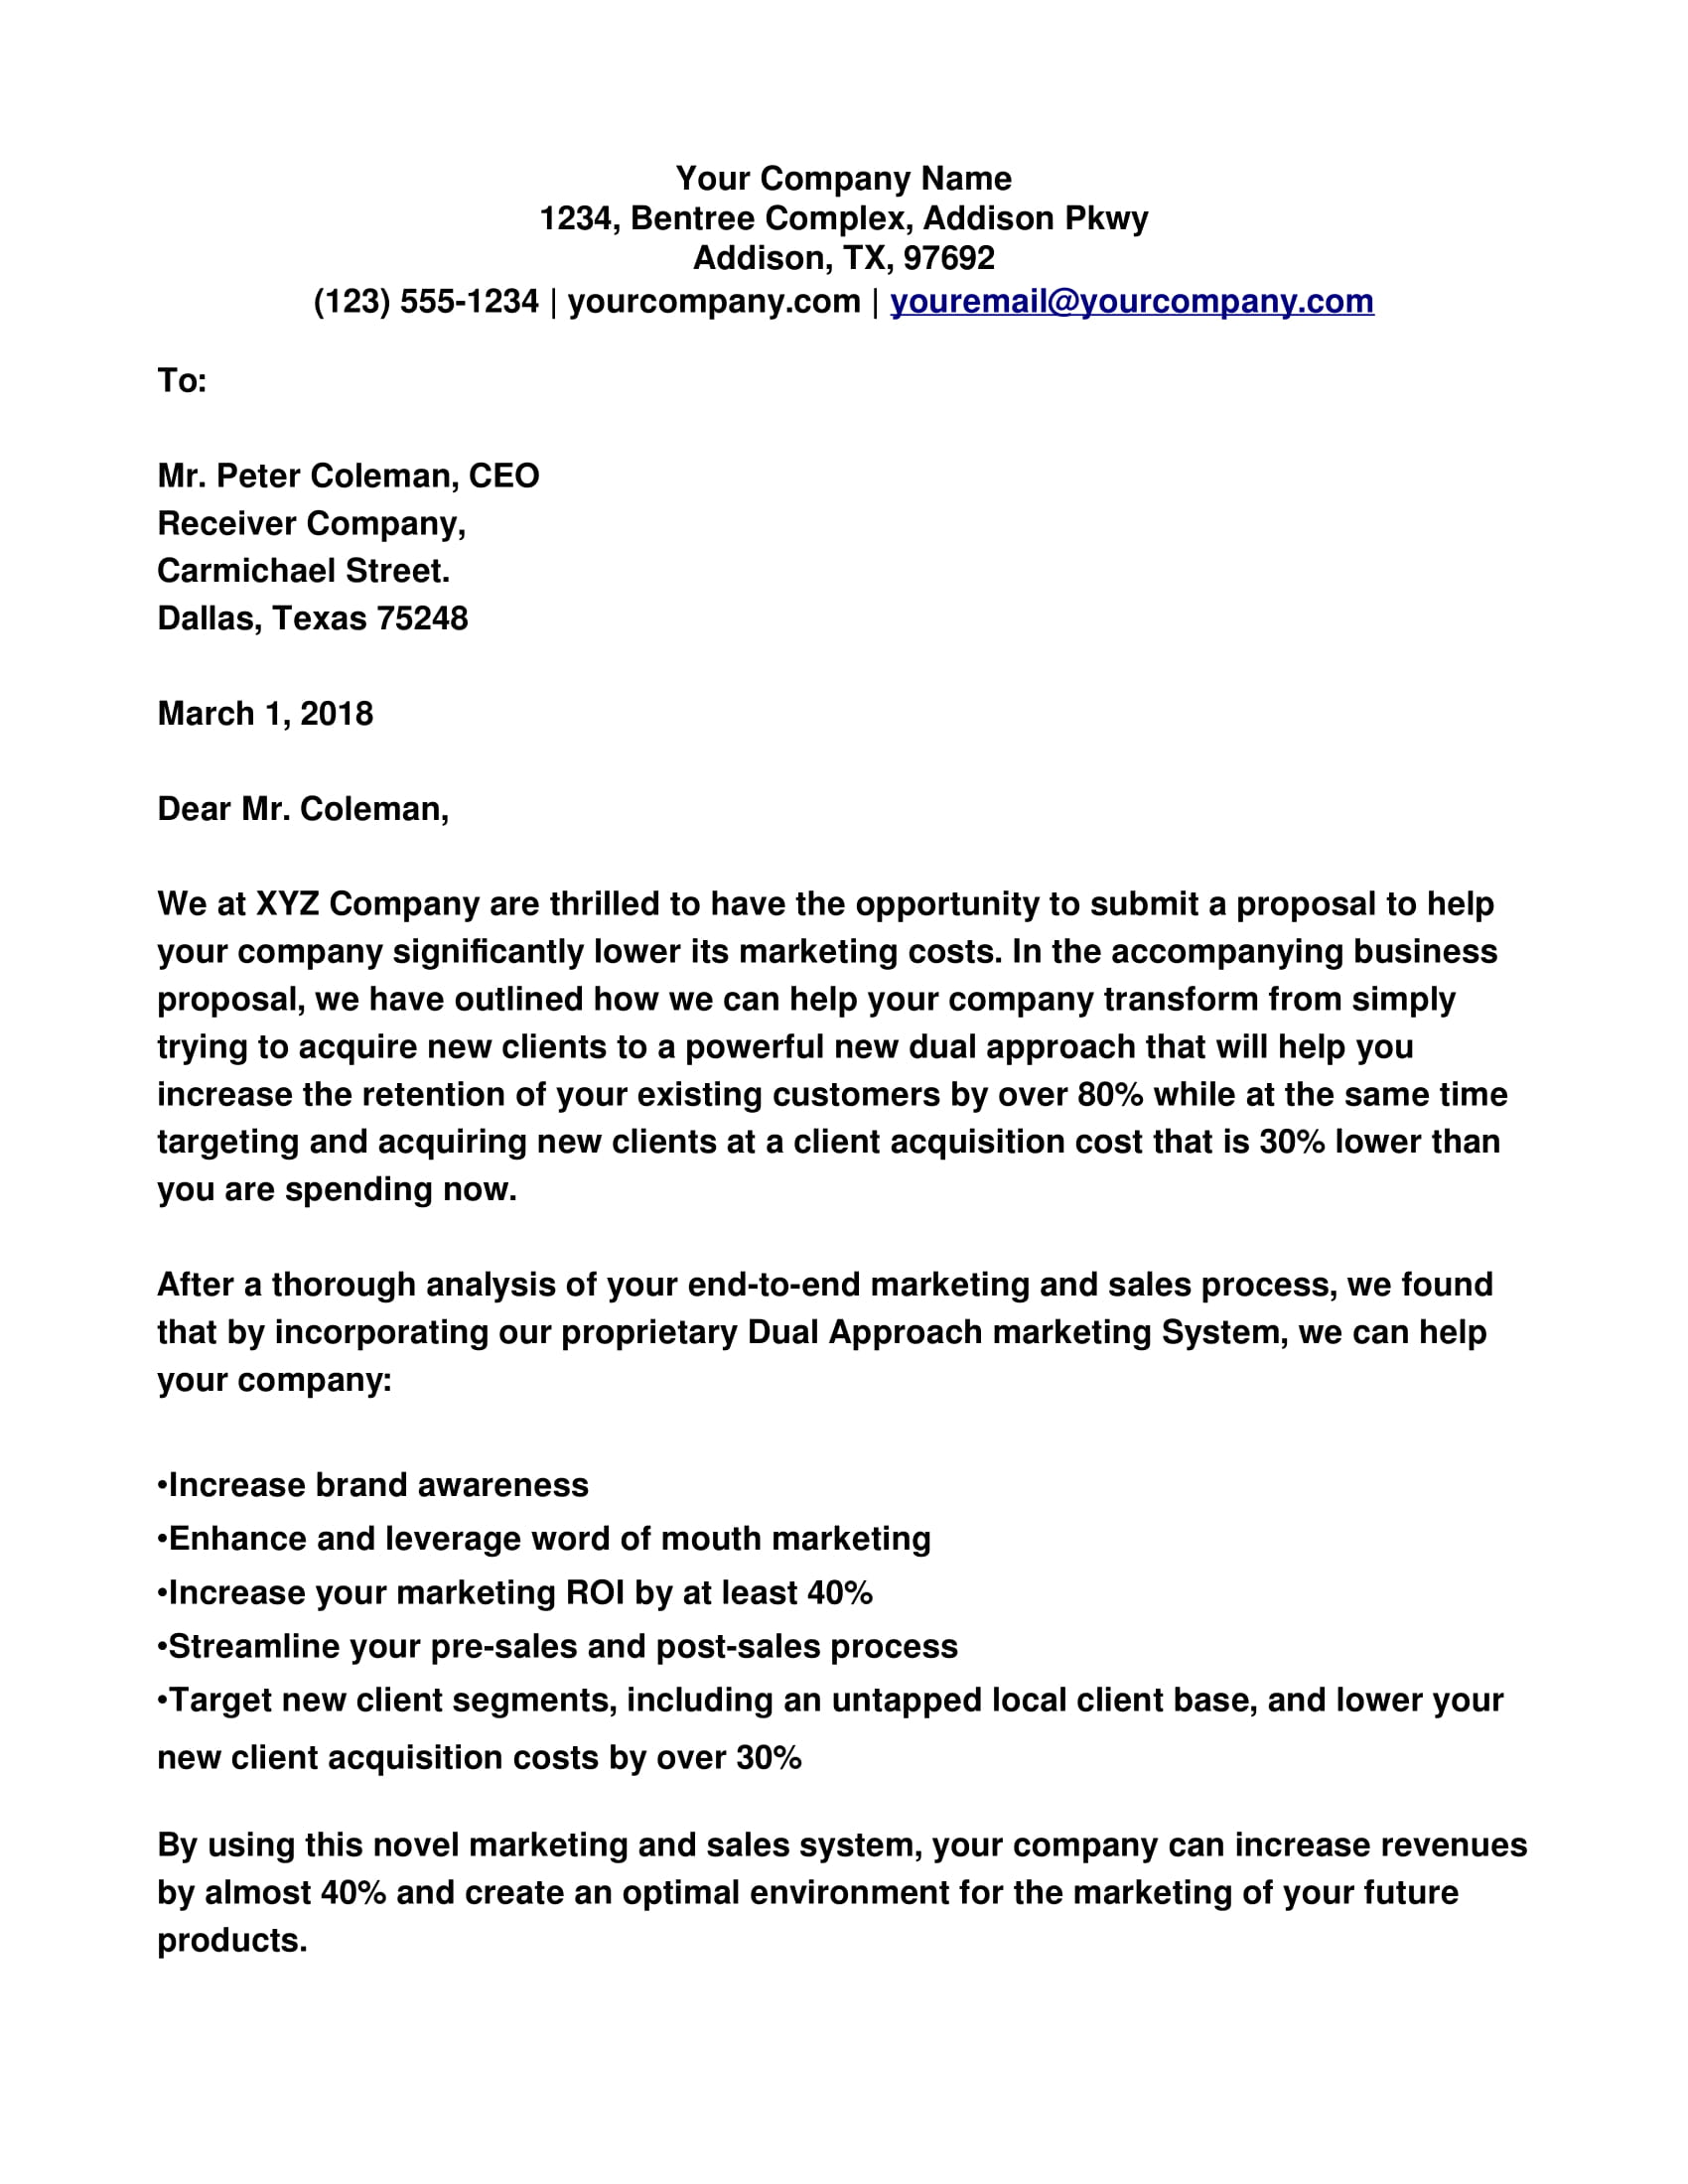 Business Proposal Cover Letter Example